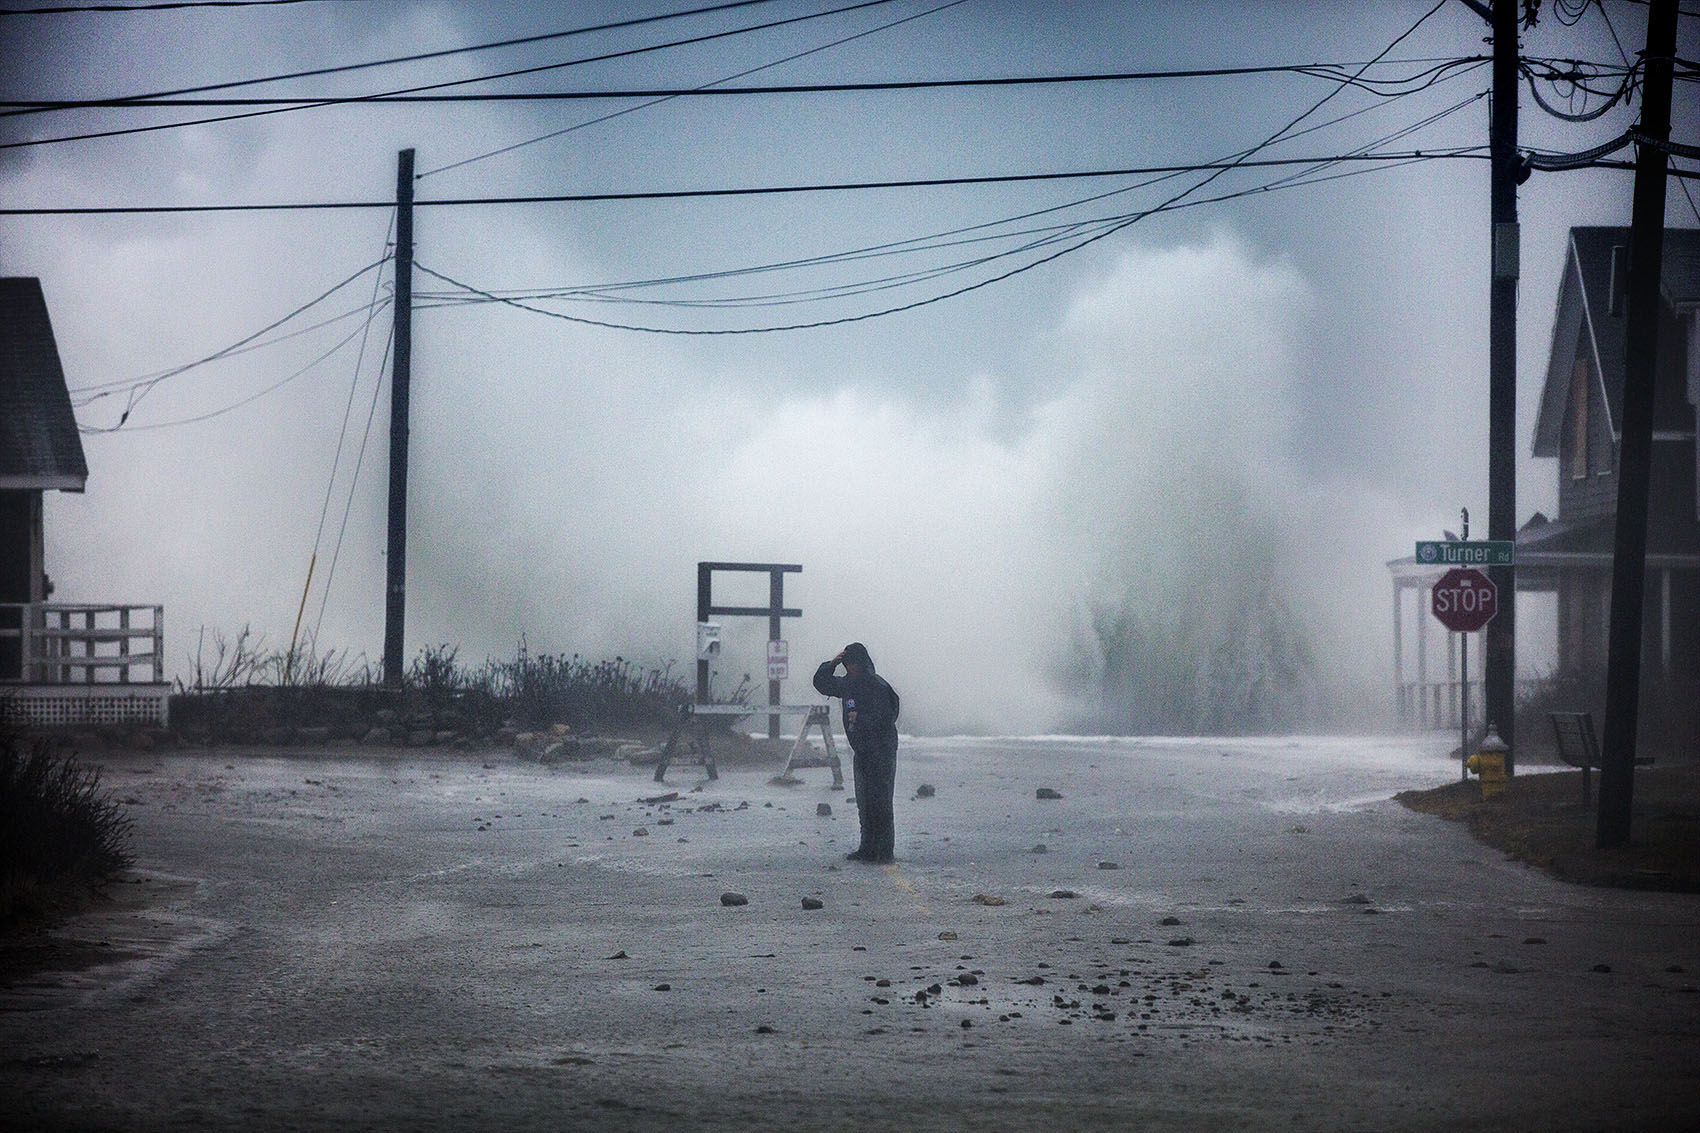 A TV news broadcaster stands in the middle of Jericho Road at Cedar Point in Scituate while waves crash on the seawall at high tide during the nor'easter on March 2. (Jesse Costa/WBUR)